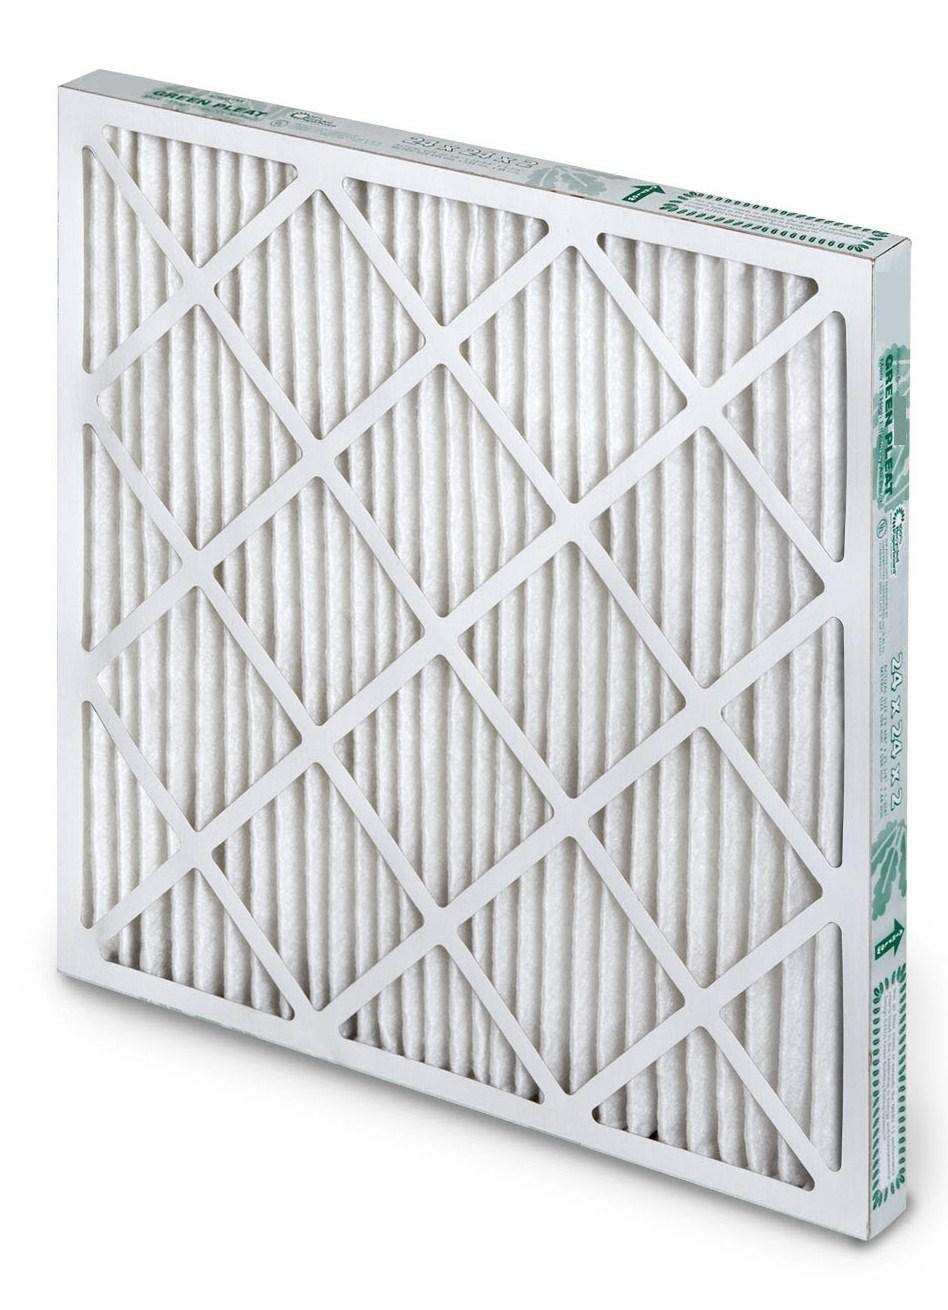 24 x 12 x 4 merv 13 aerostar green pleat high capacity - Hvac Air Filters